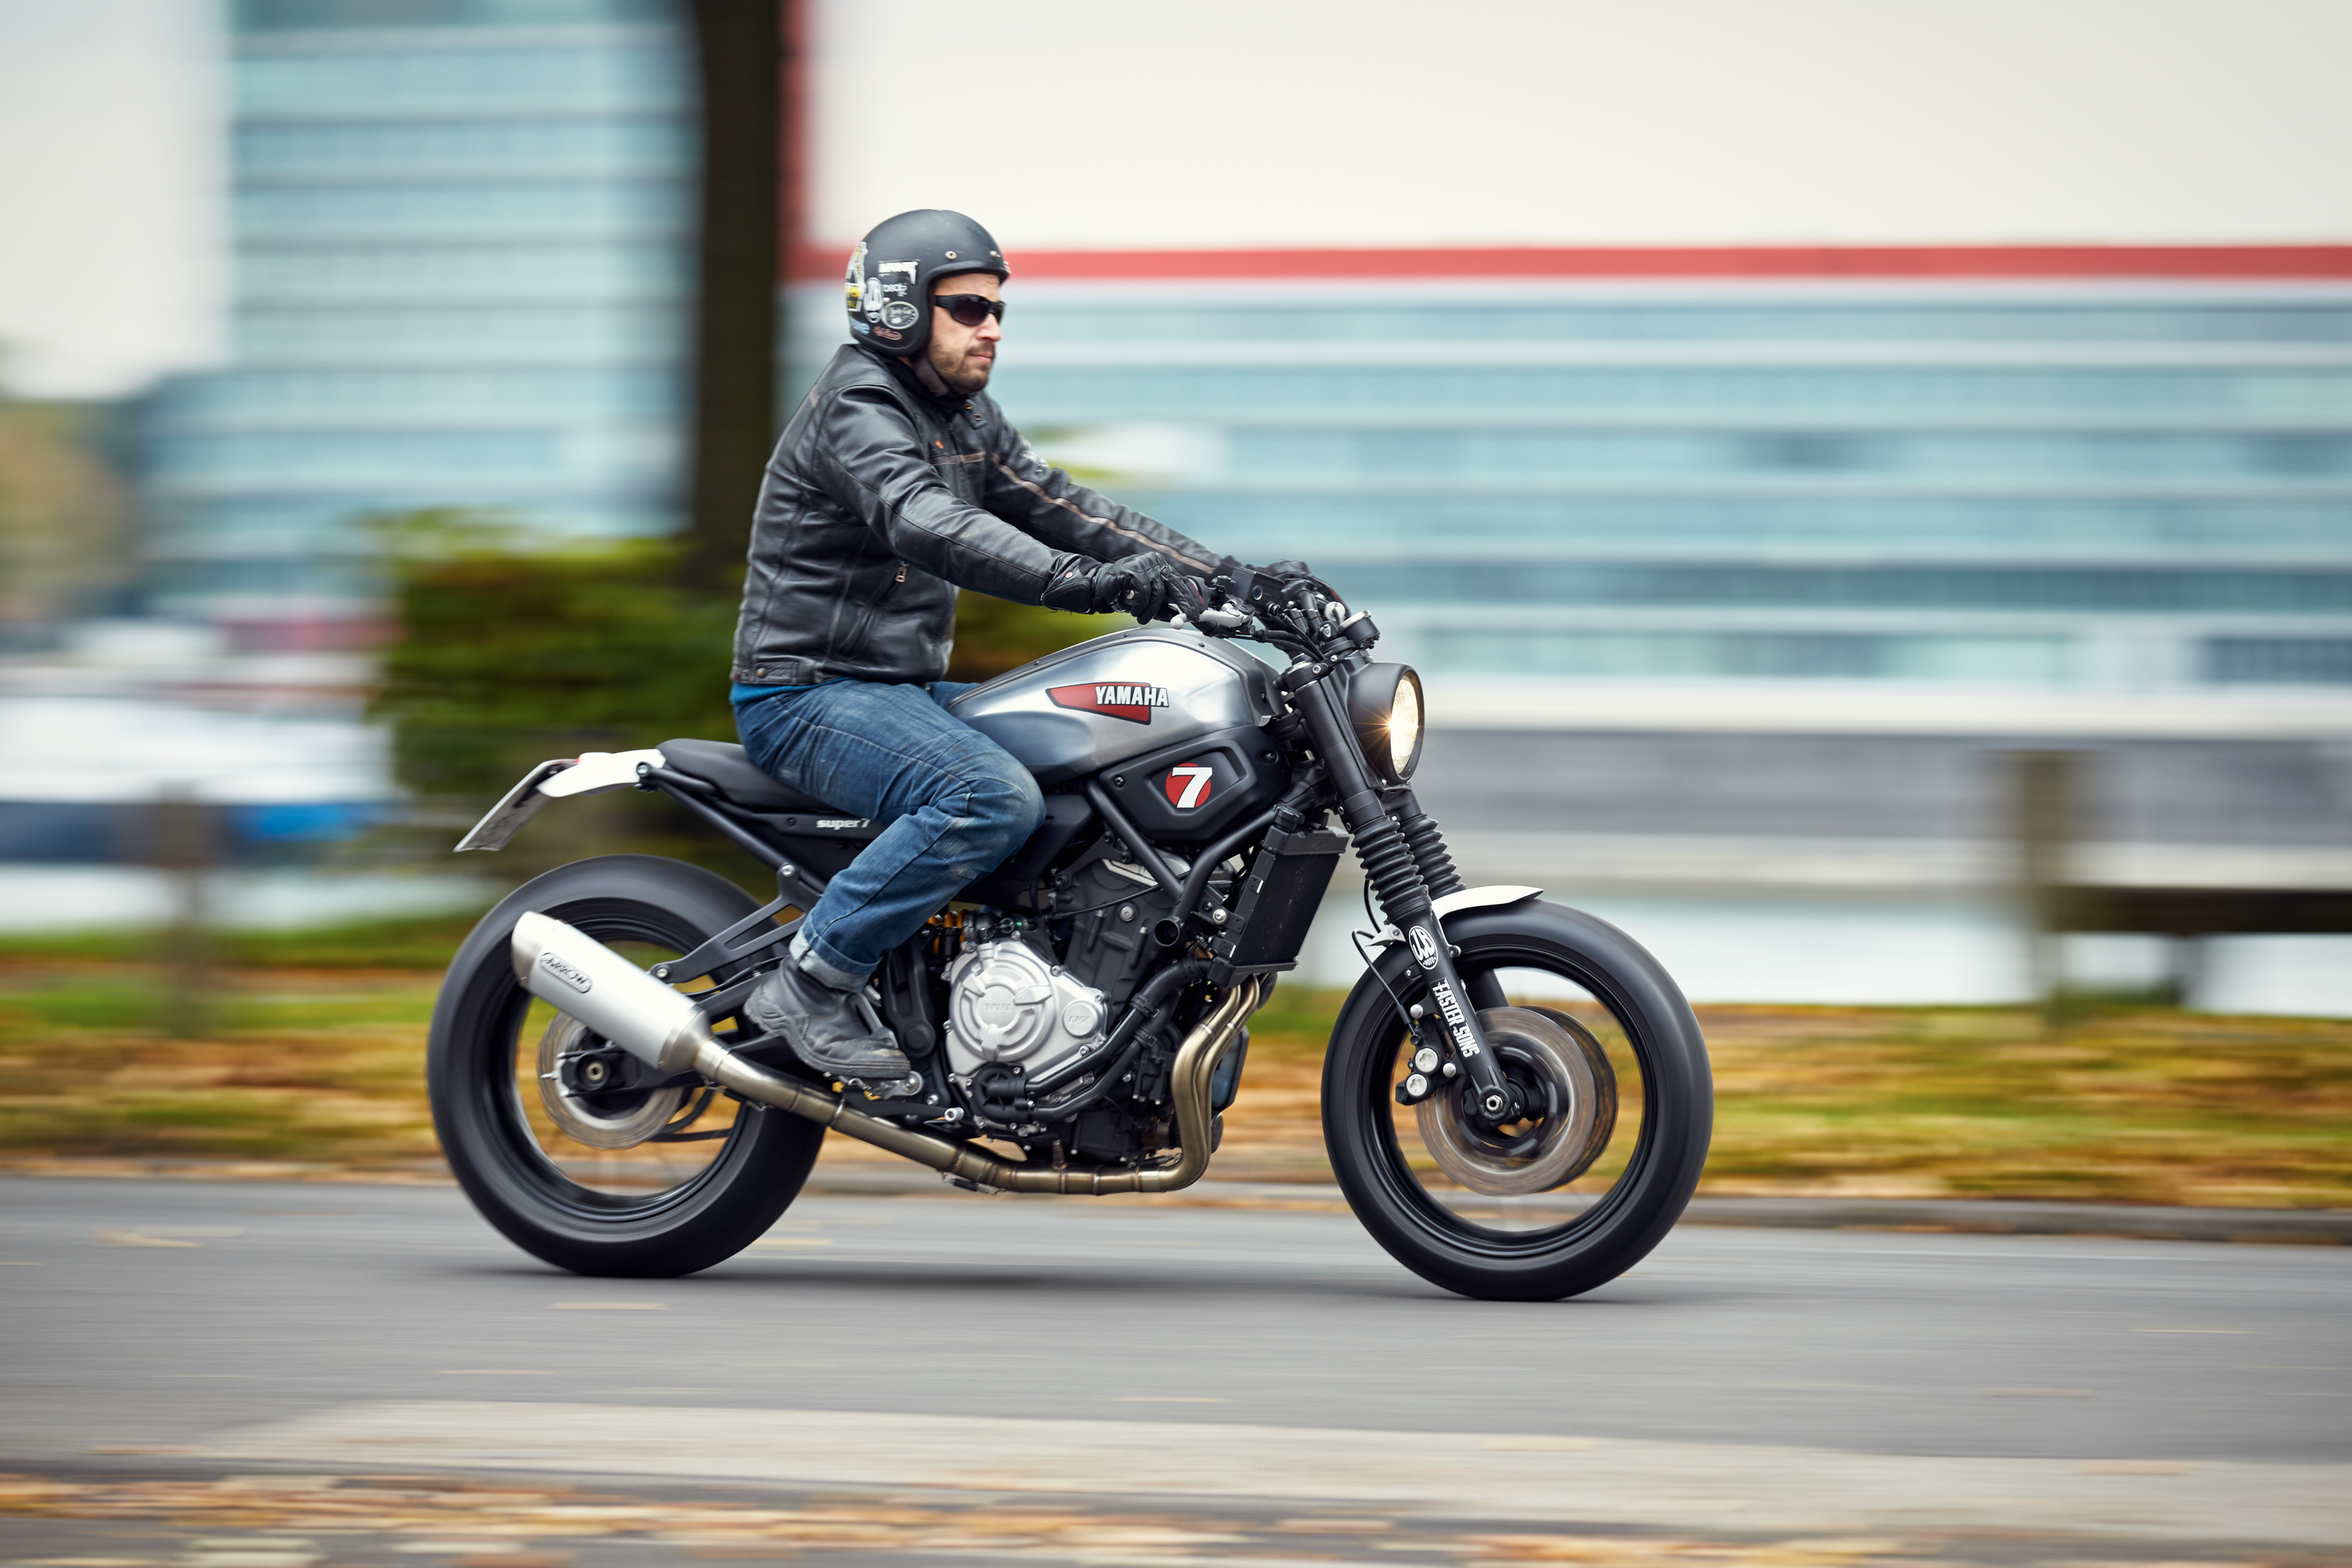 CLICK HERE TO CONTINUE READING OUR YAMAHA XSR700 REVIEW